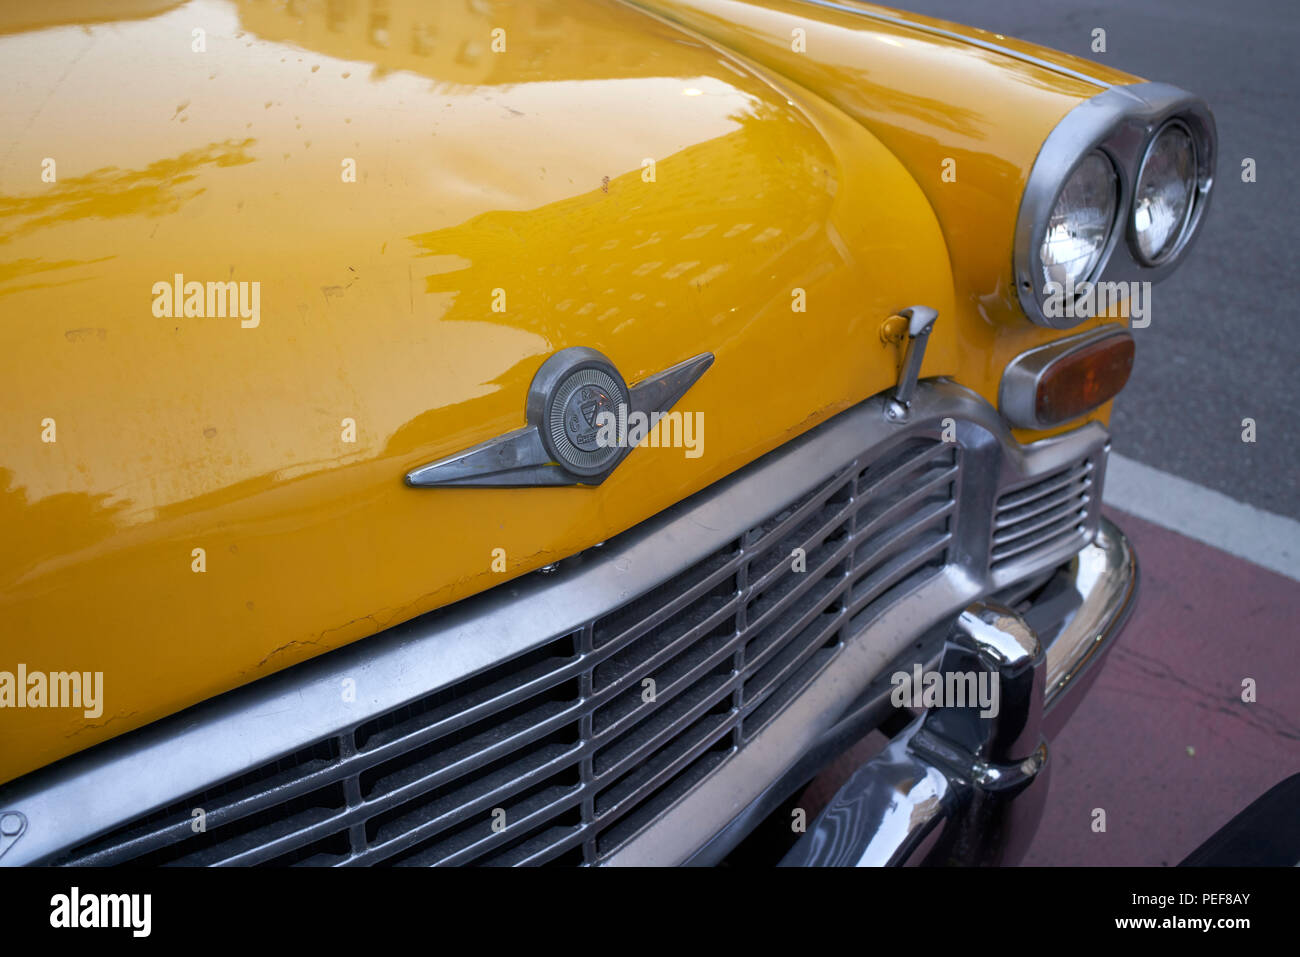 Front of a vintage American Checker taxicab in New York City - Stock Image